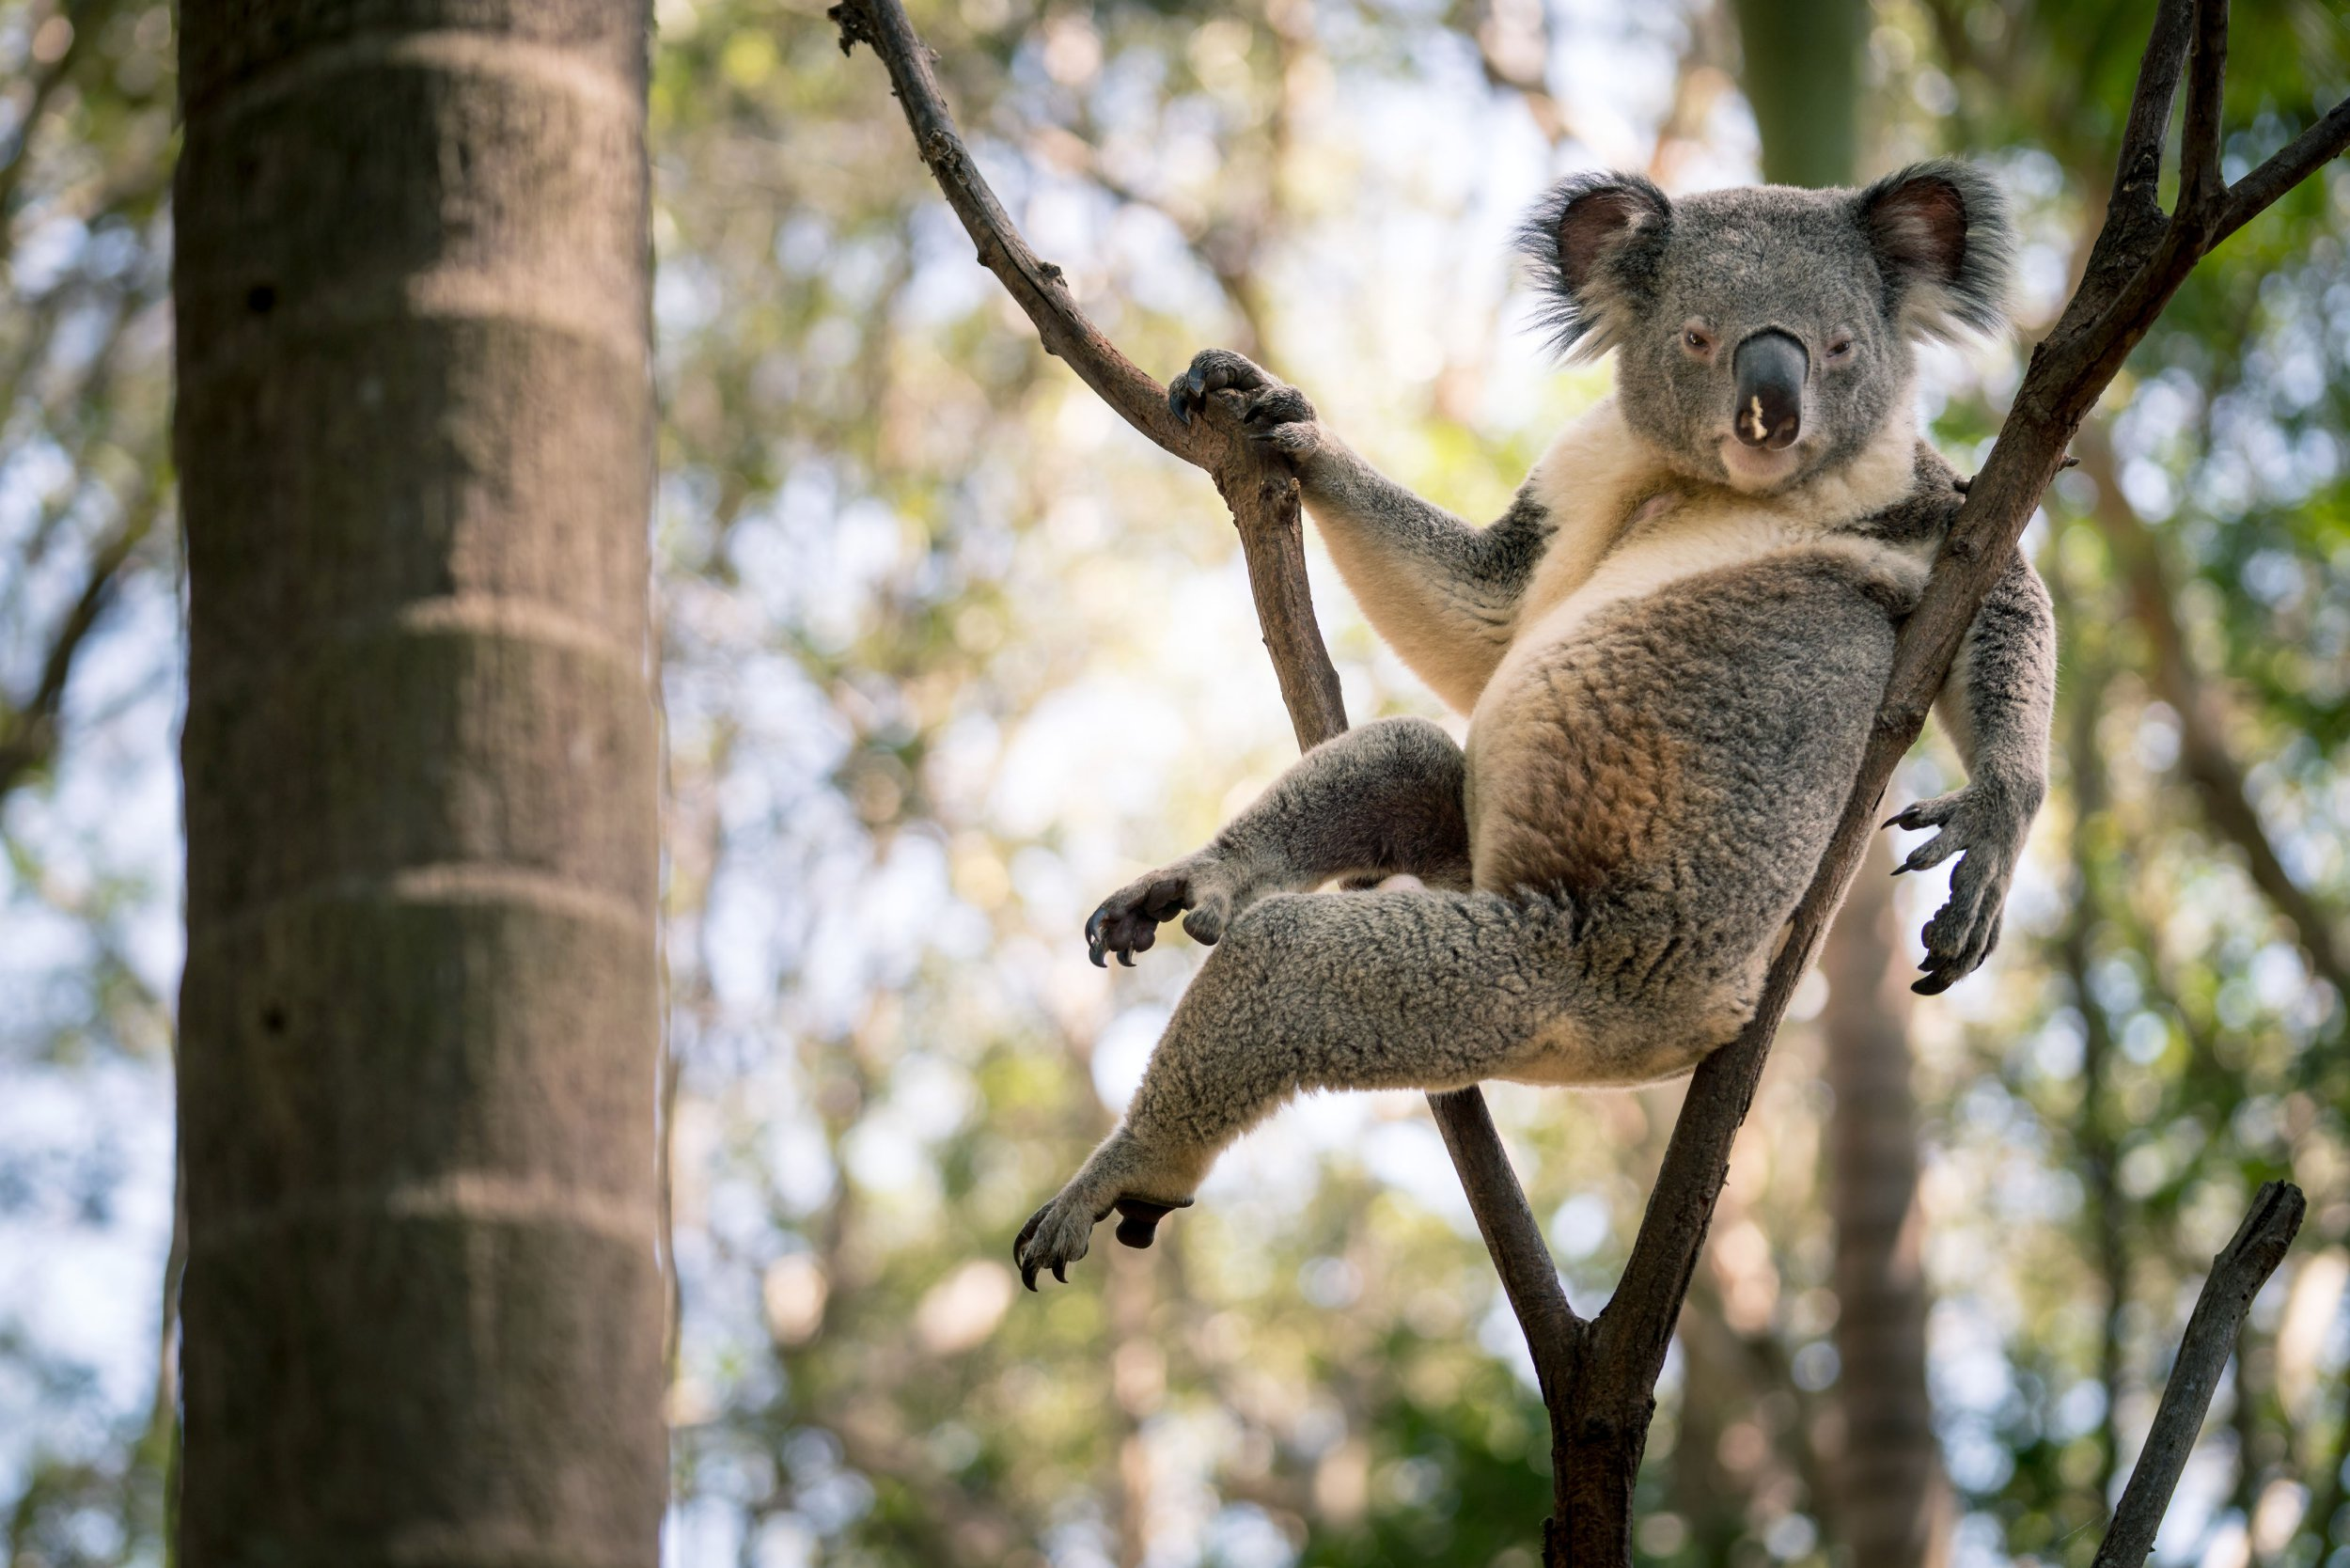 Please look at this seductive koala posing in front of the camera to get all the girls